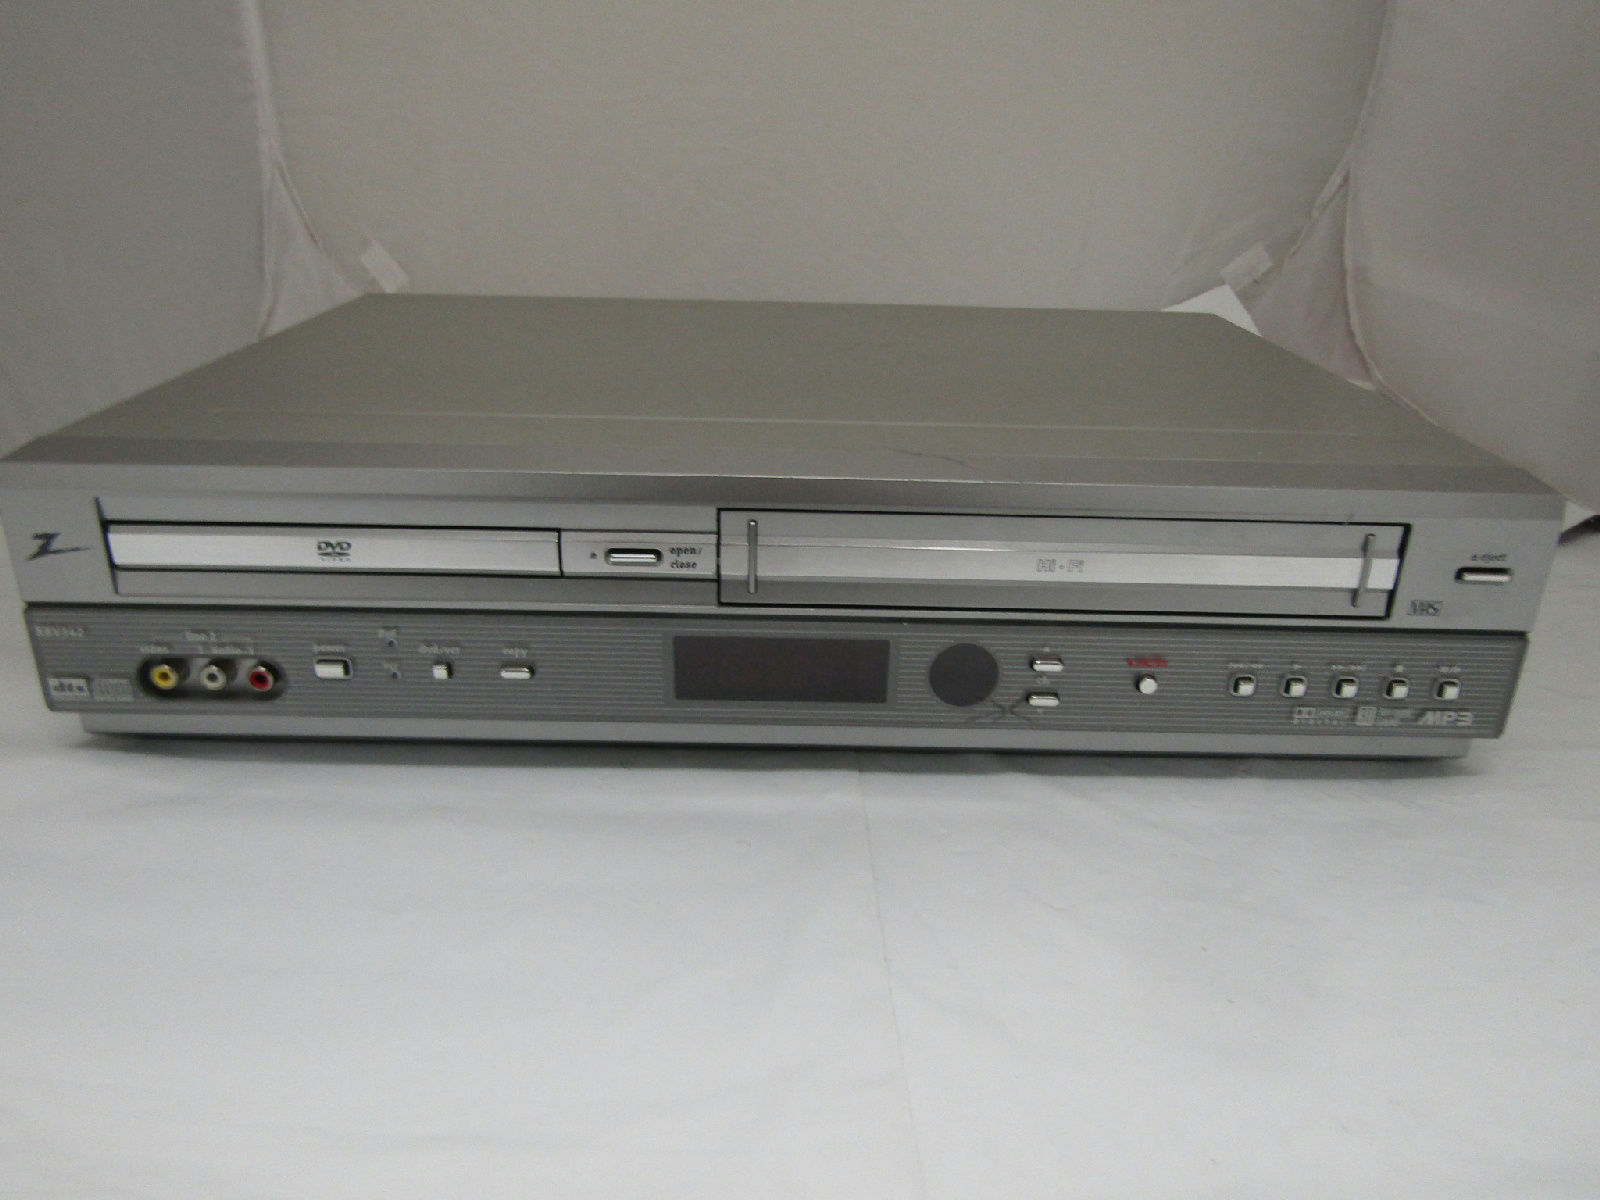 zenith xbv342 vcr cassette dvd player recorder silver tested rh picclick com Zenith Television Manual Zenith Radio Model Numbers